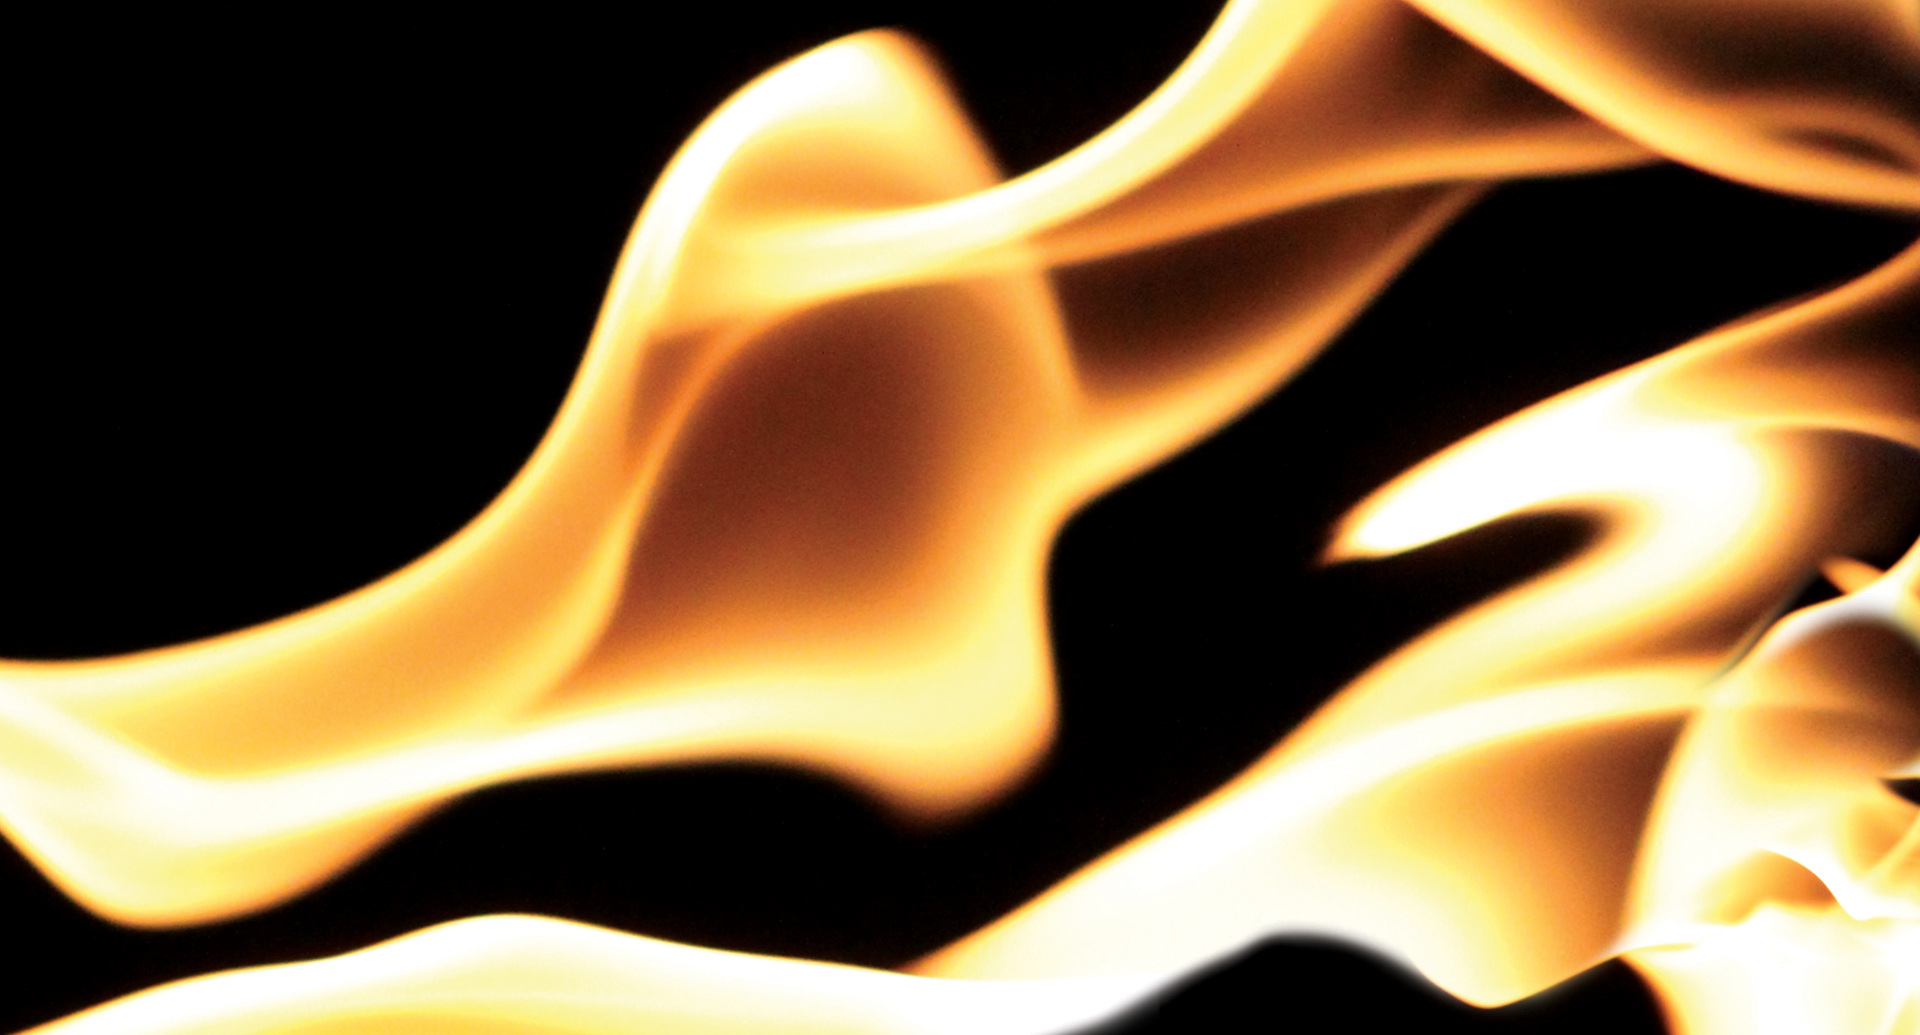 surviving the firestorms of our lives